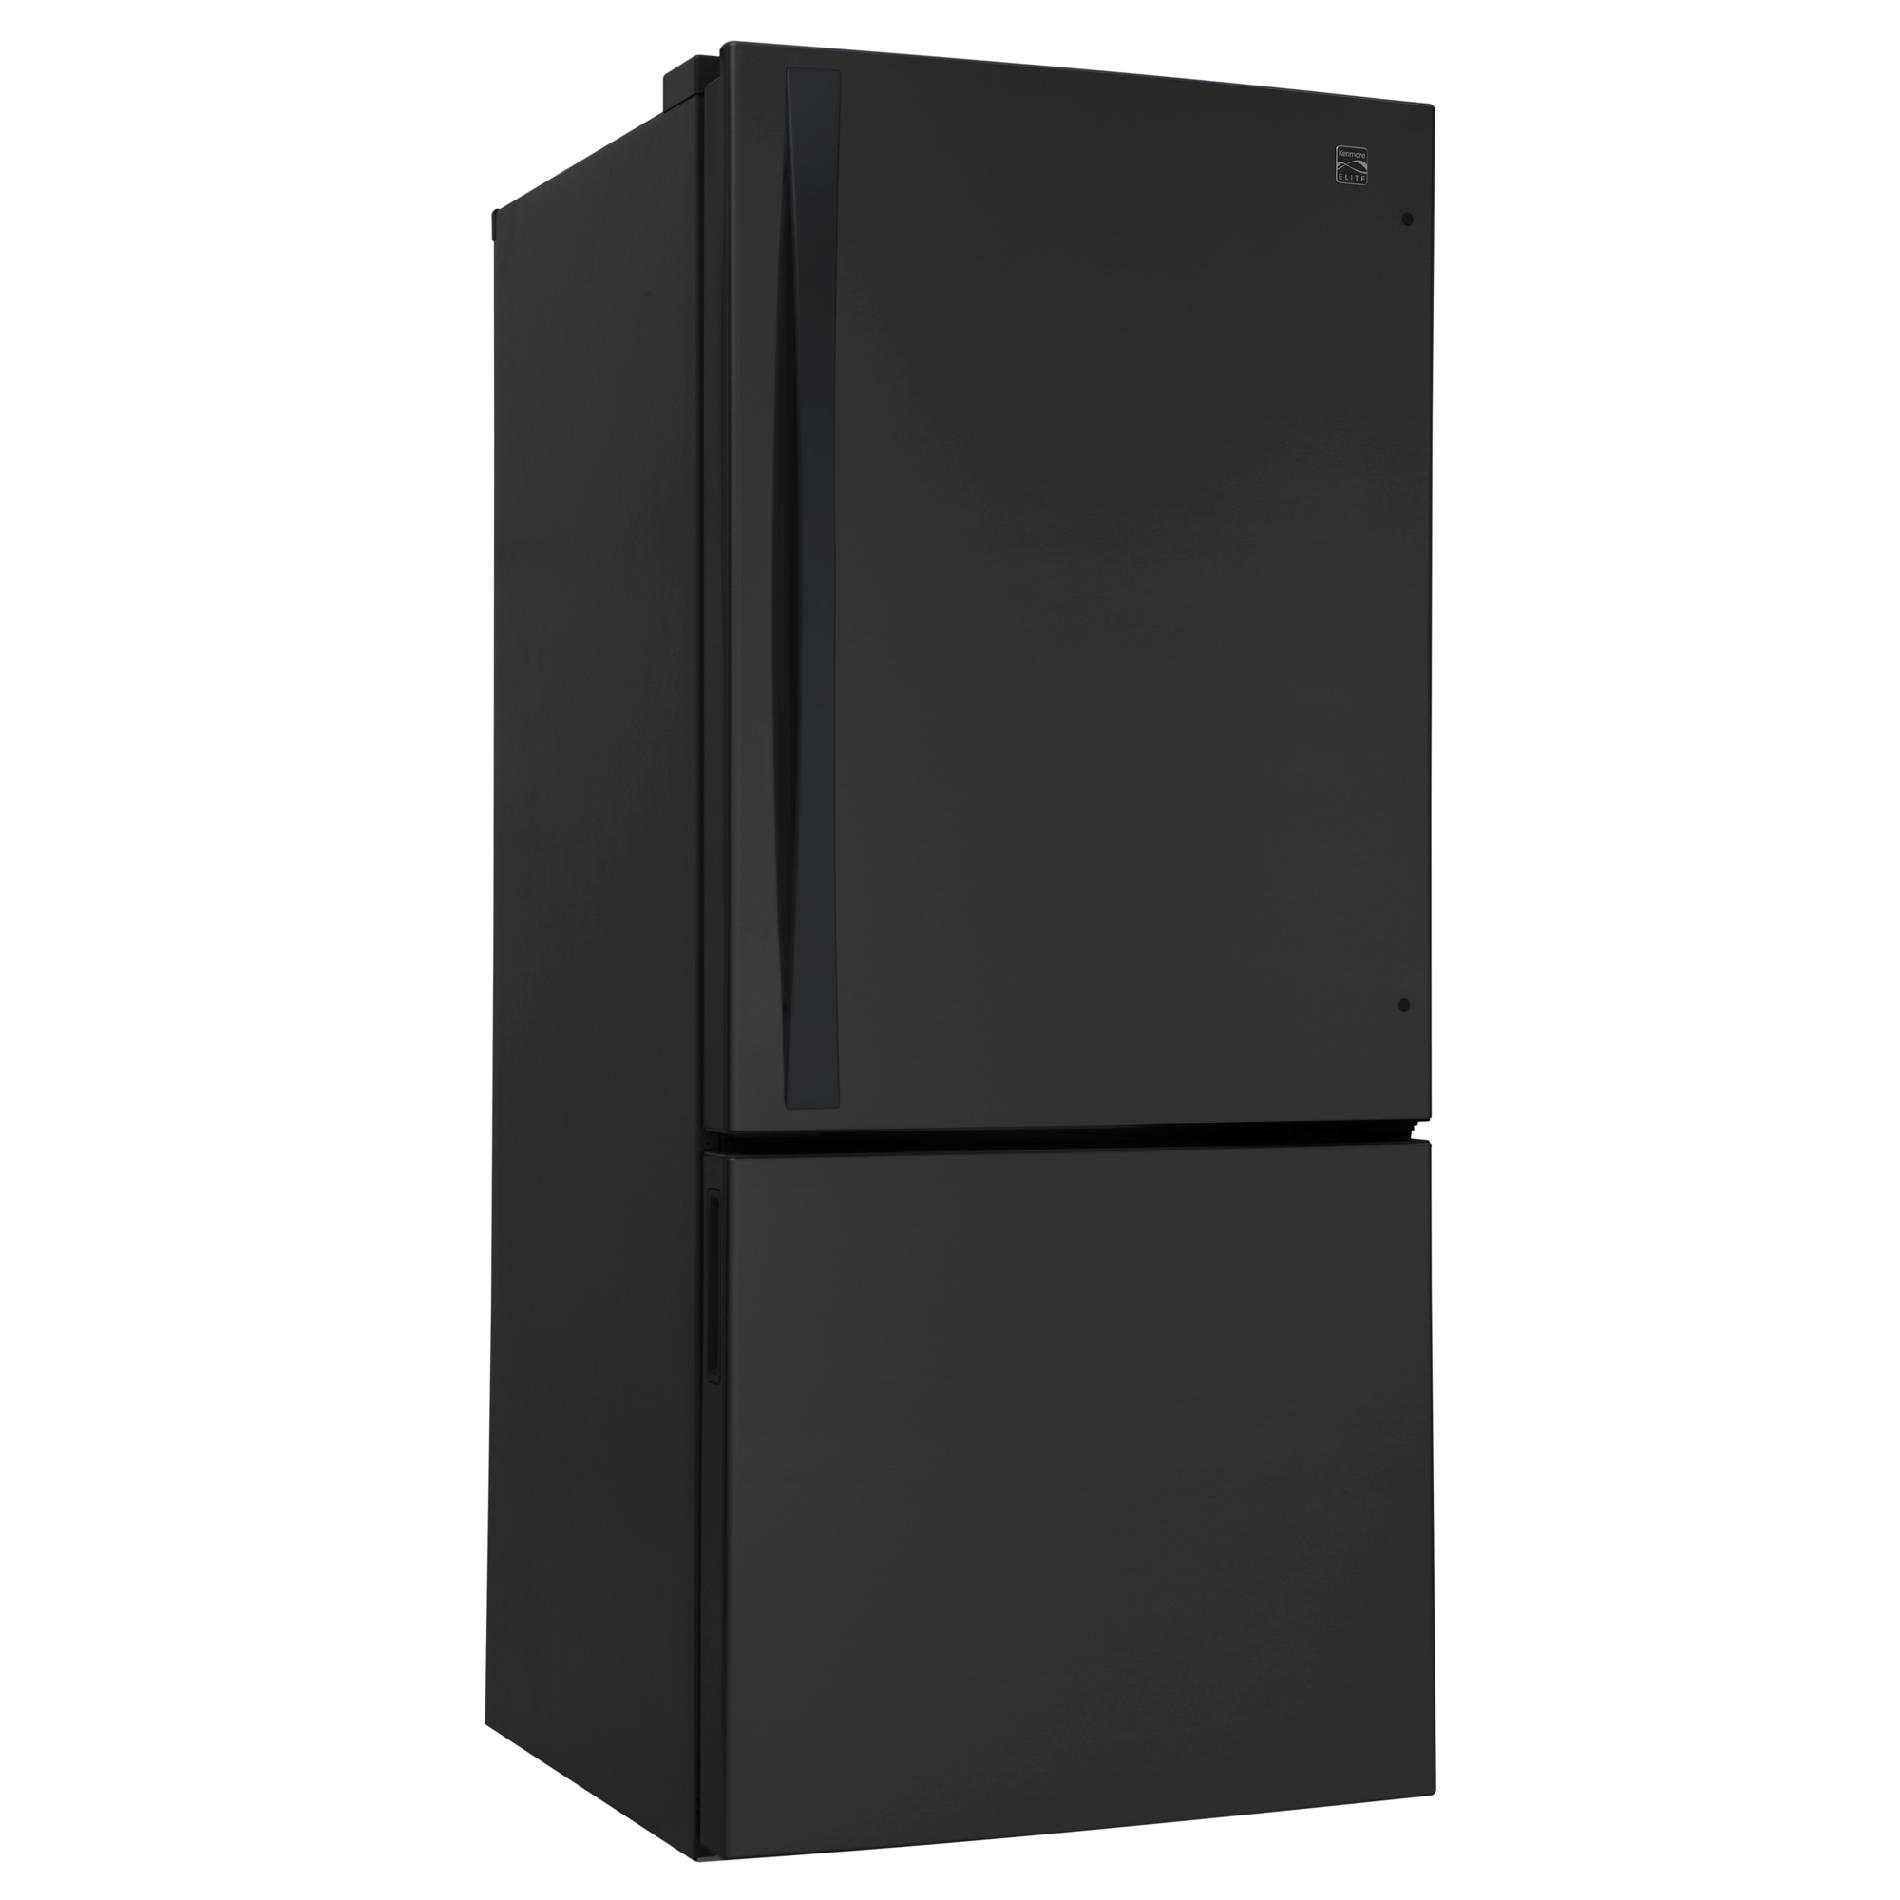 Kenmore Elite 22.1 cu. ft. Bottom-Freezer Refrigerator - Black